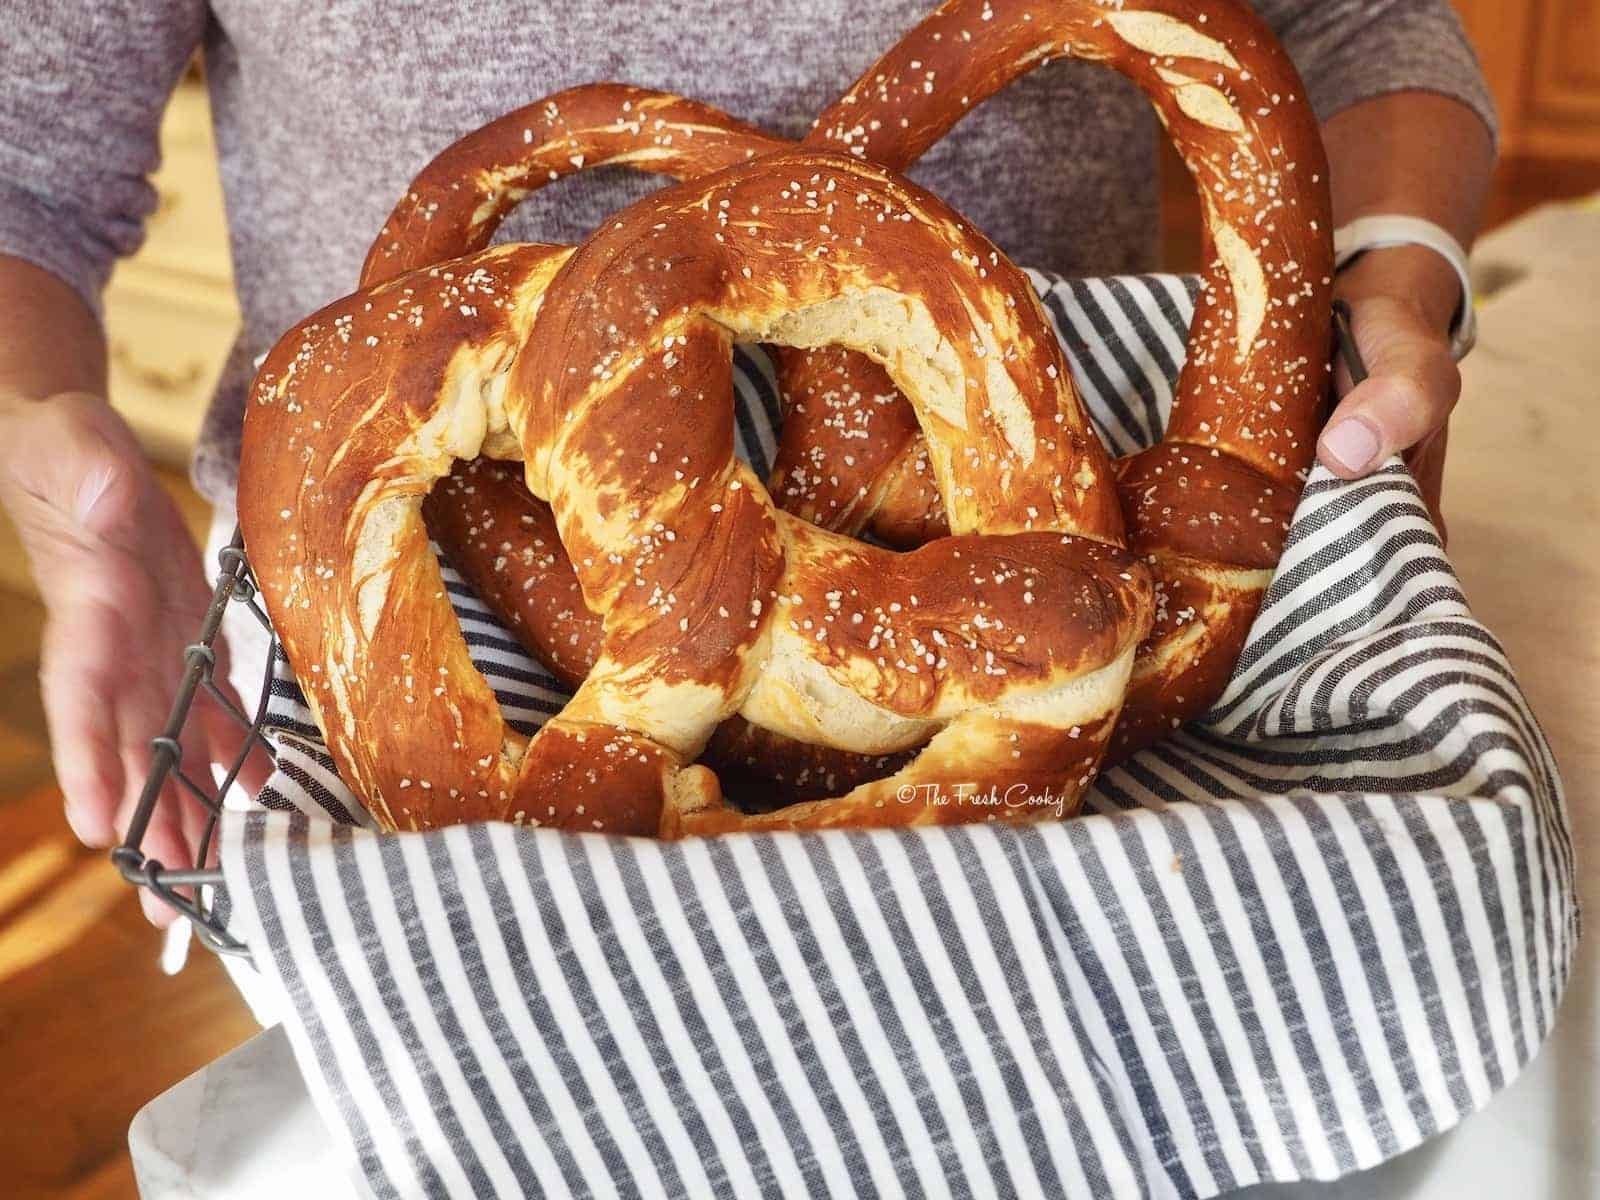 Basket of two Laugenbrezels or German Pretzels via @thefreshcooky